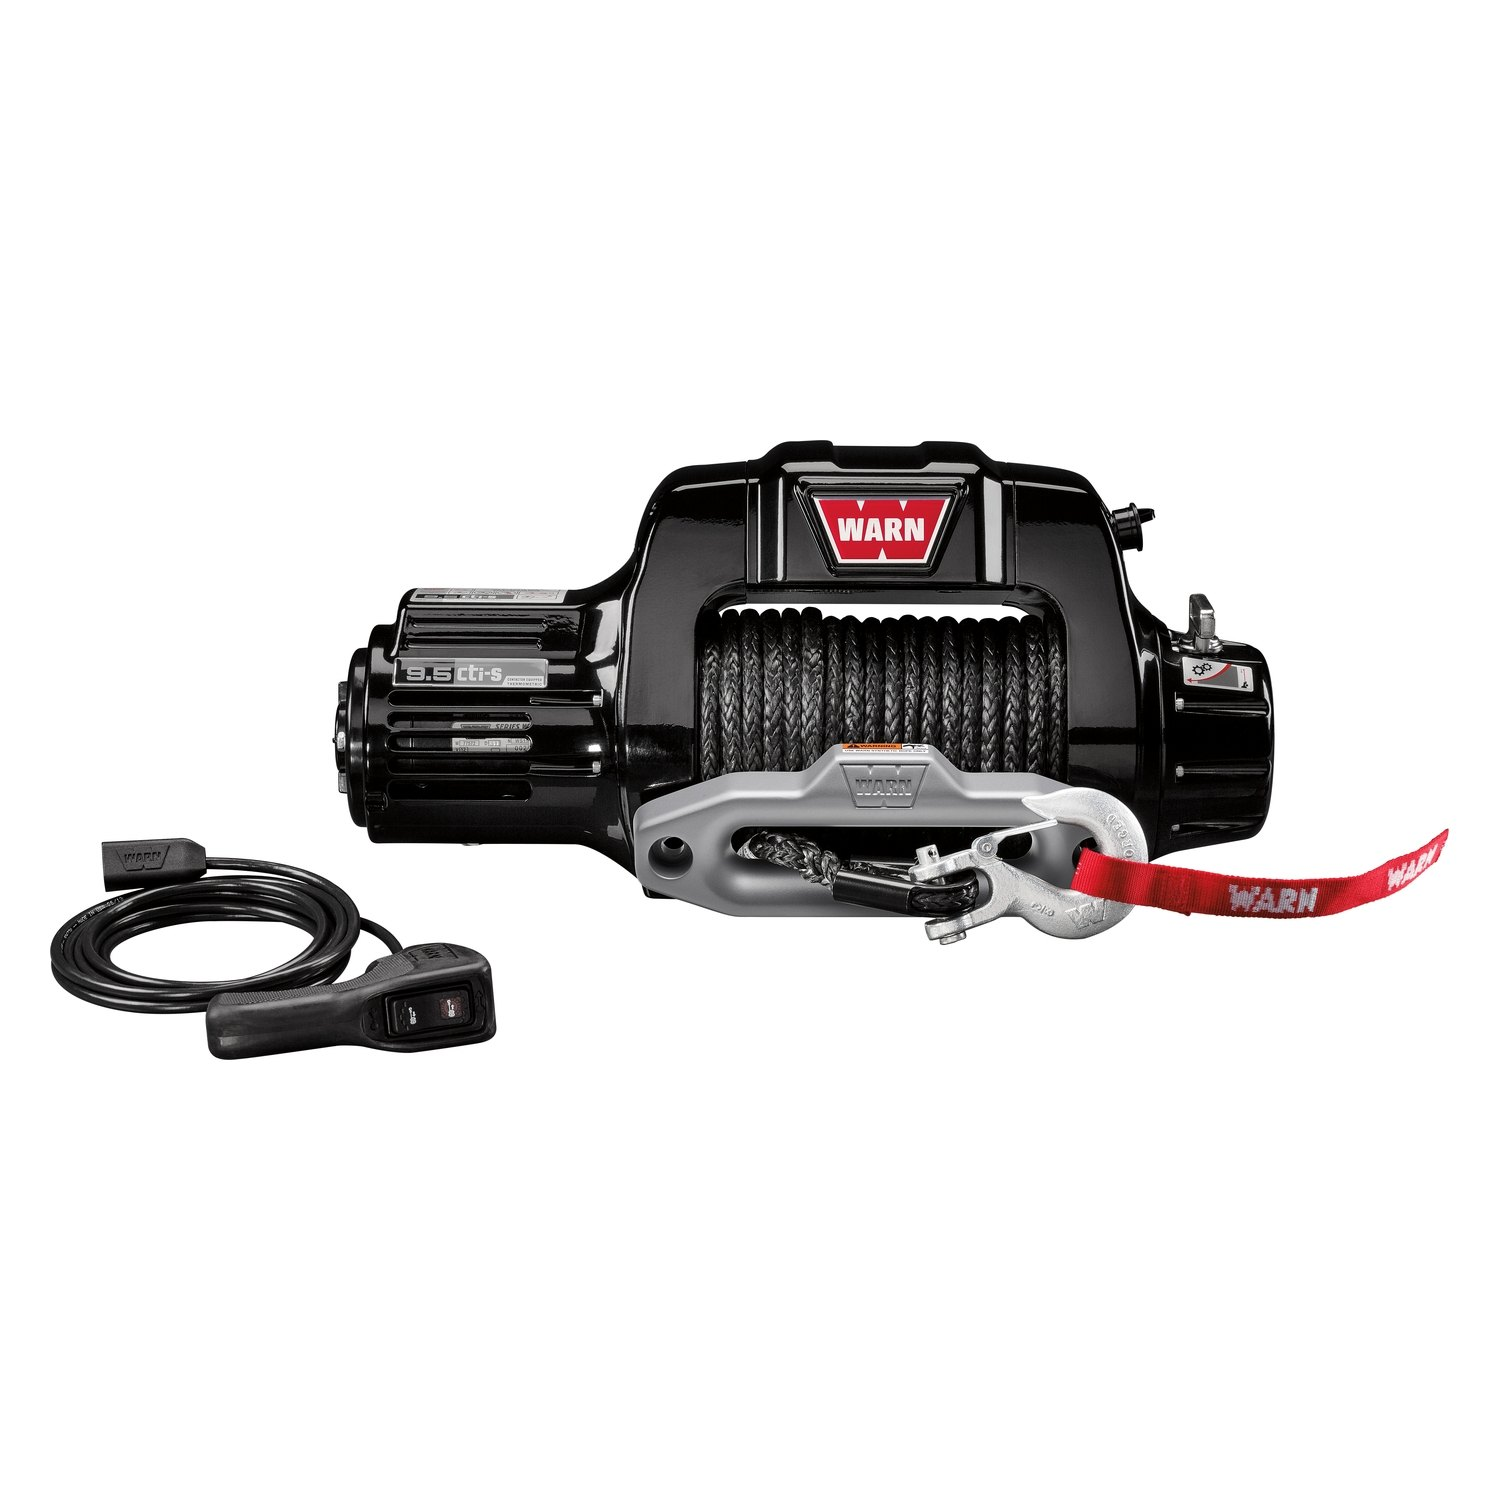 warn winch crossover wiring diagram speaker 9 5cti 9500 lbs self recovery electric